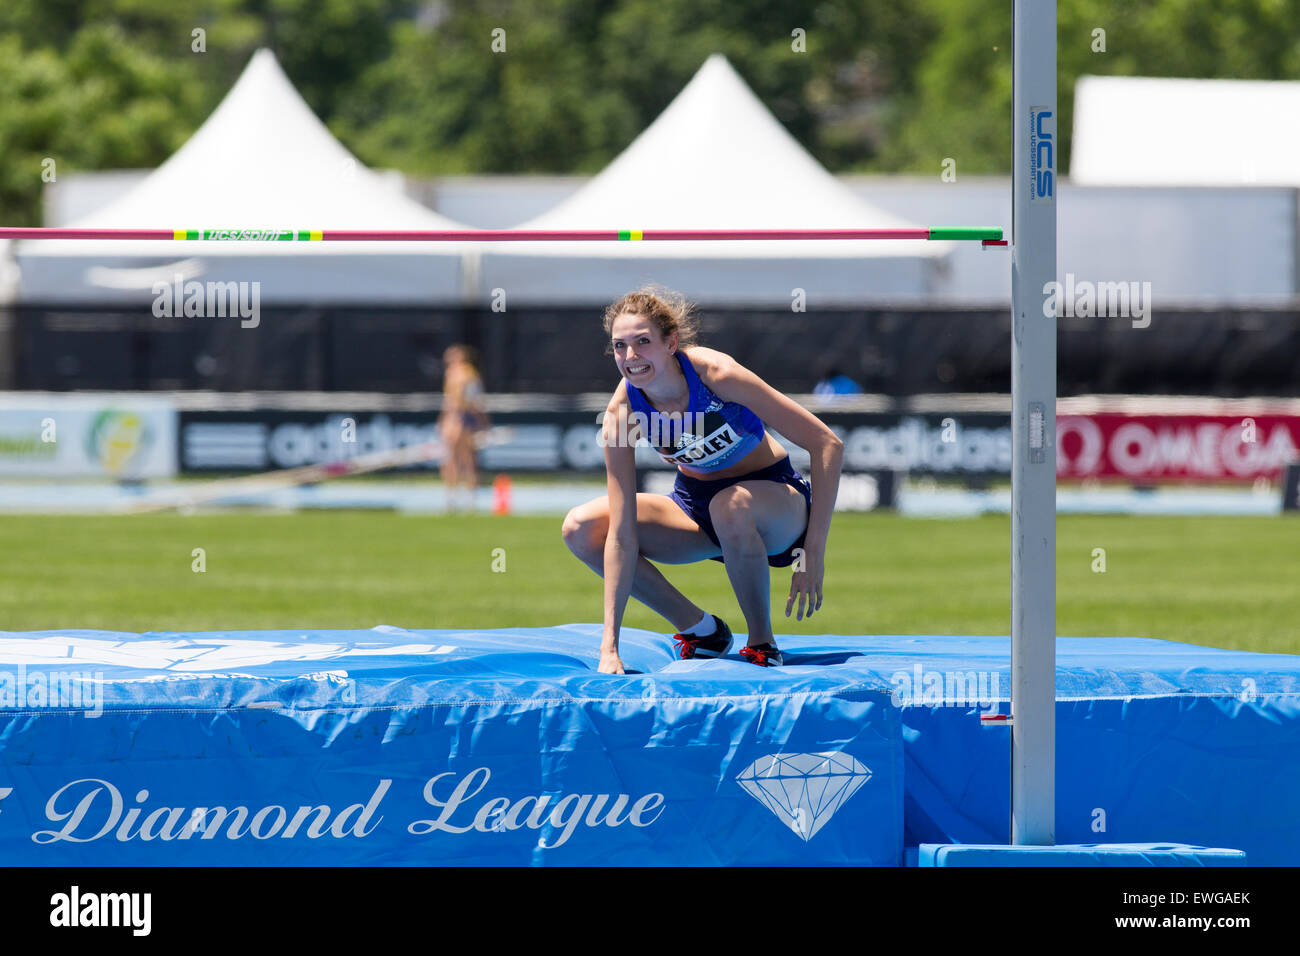 Isobel Pooley (GBR) in the Women's High Jump at the 2015 Adidas NYC Diamond League Grand Prix - Stock Image